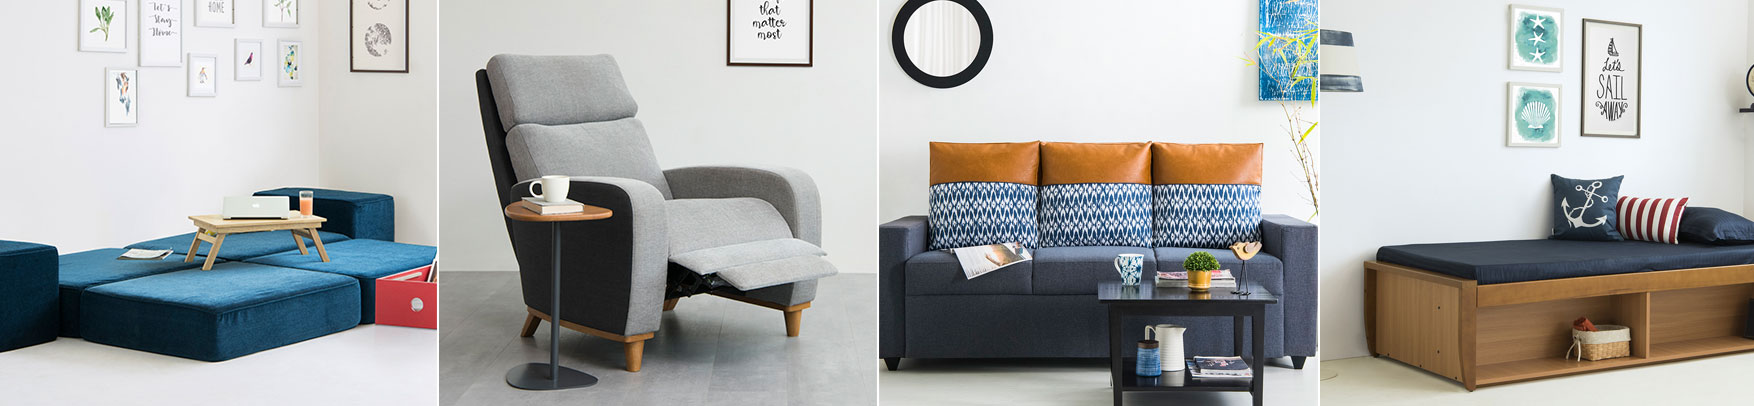 Furniture Essentials for Diwali